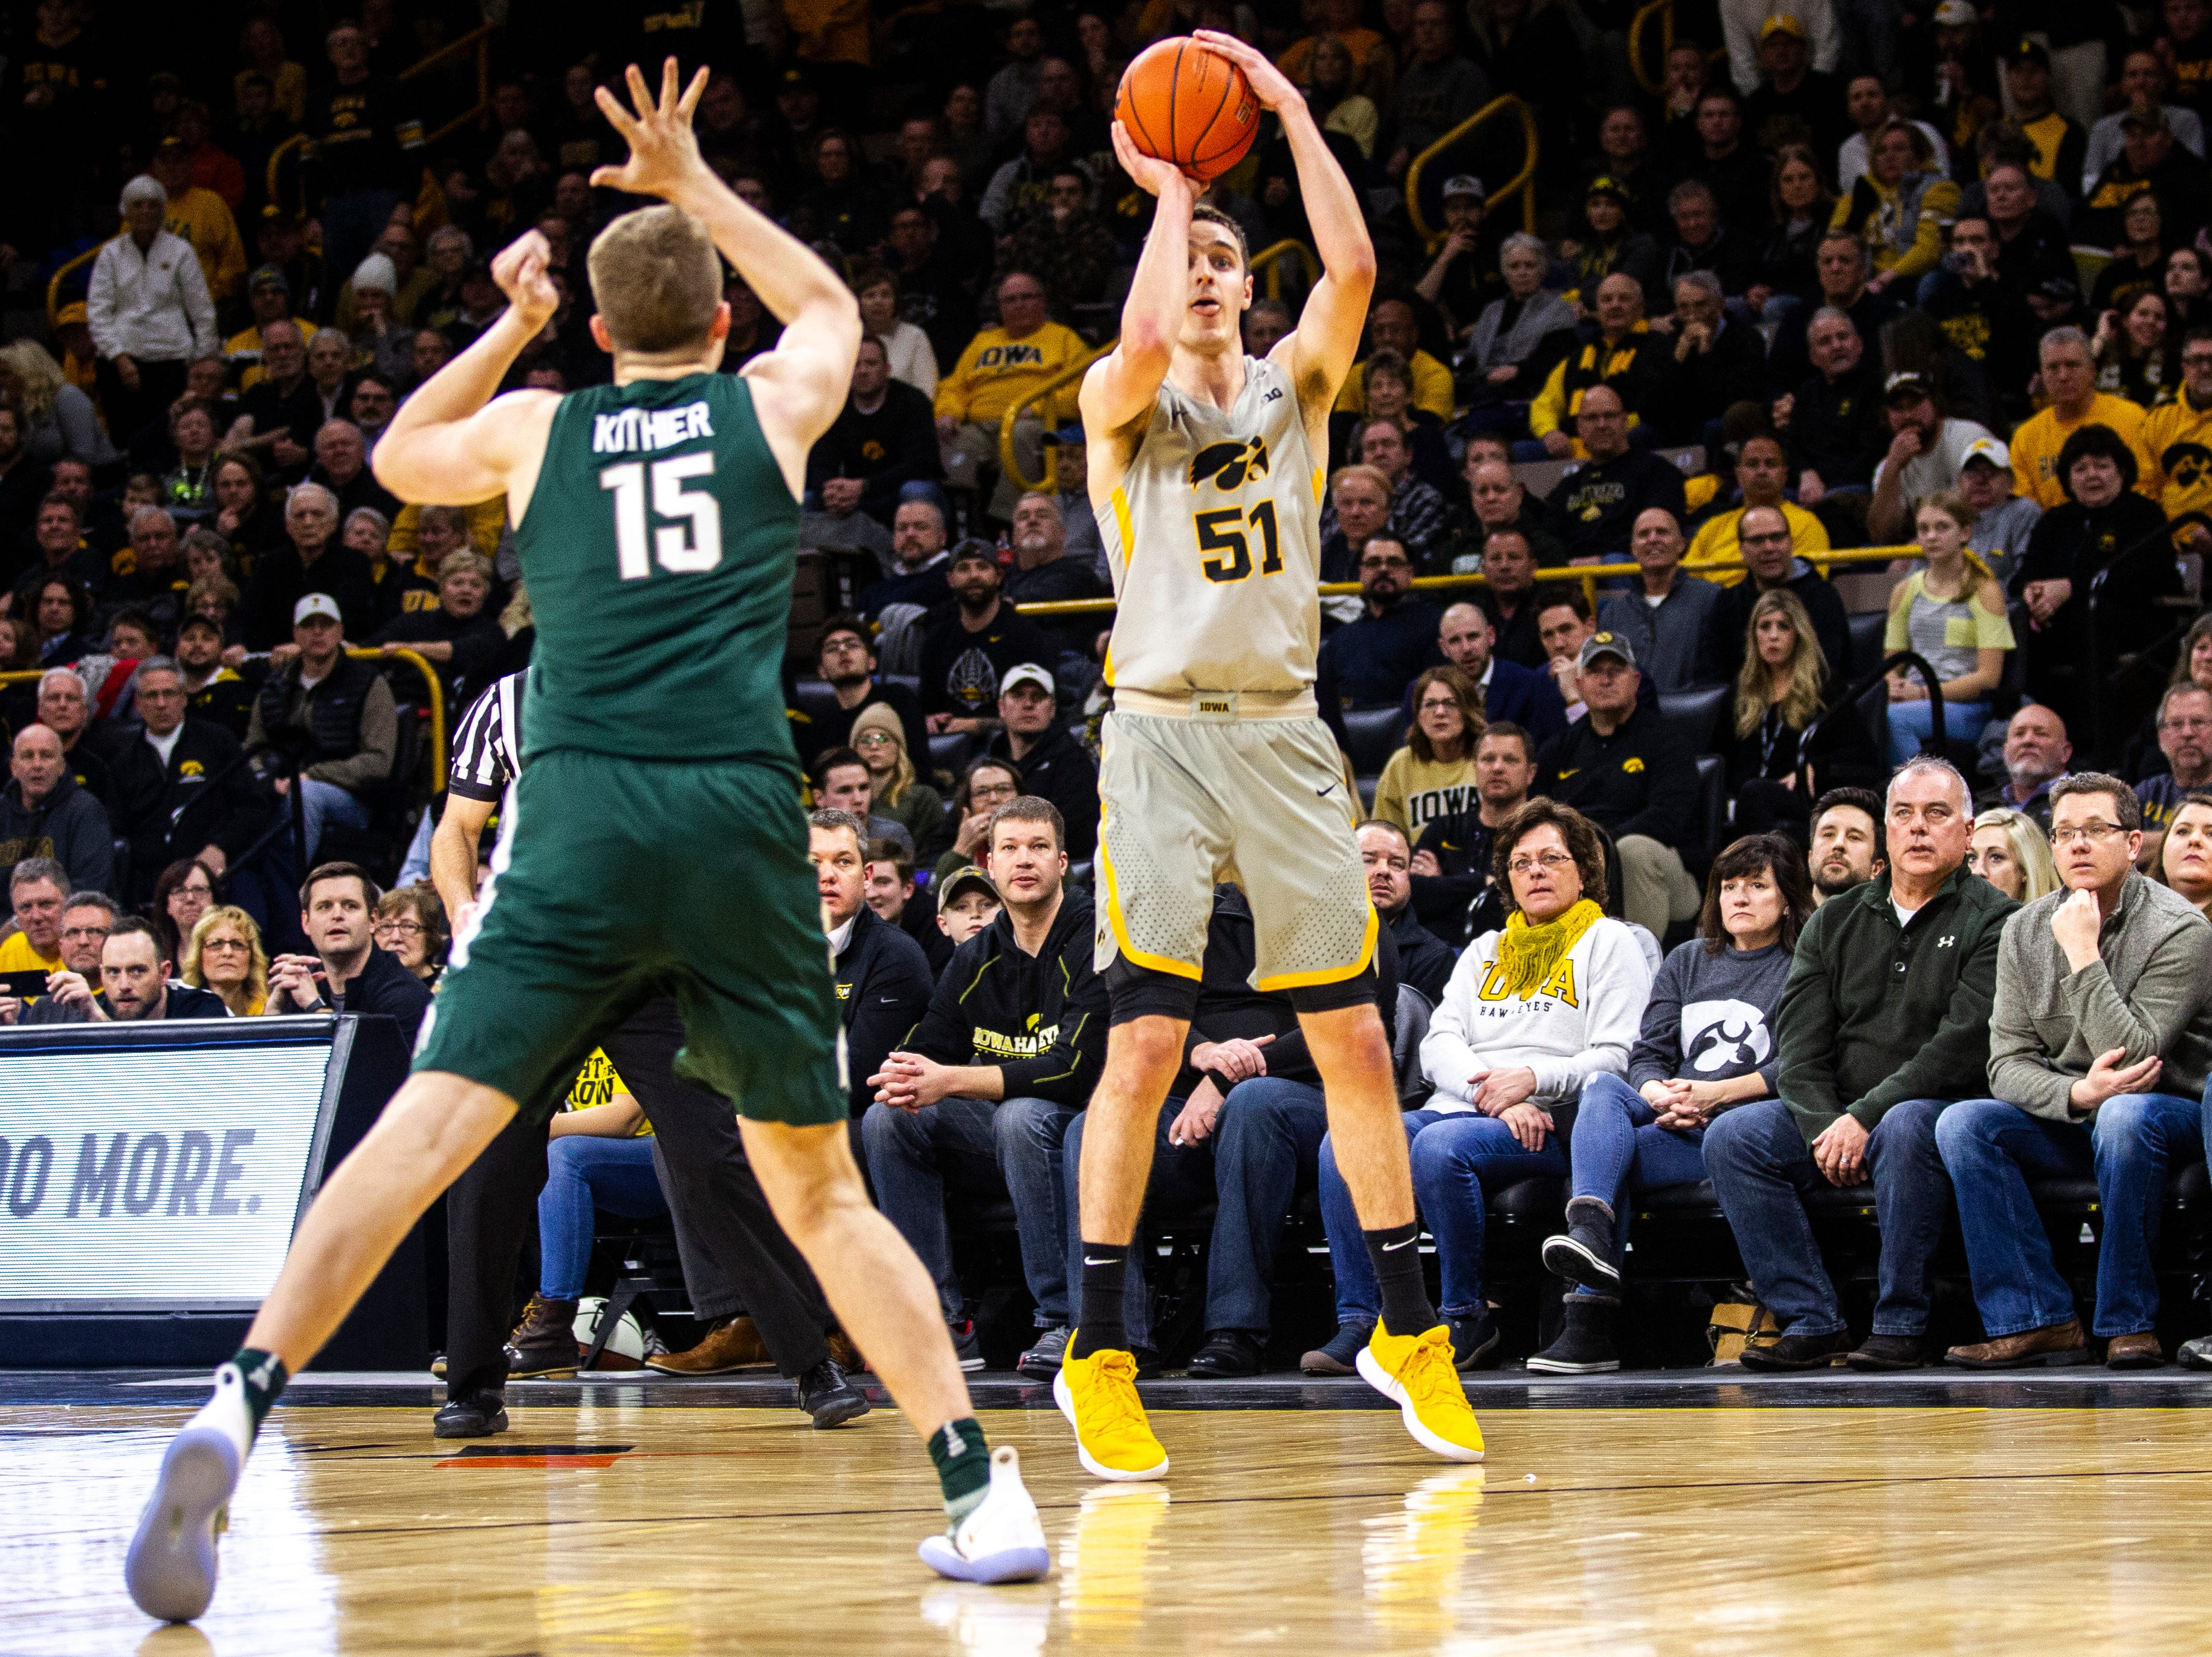 Iowa forward Nicholas Baer (51) shoots a 3-point basket during a NCAA Big Ten Conference men's basketball game on Thursday, Jan. 24, 2019, at Carver-Hawkeye Arena in Iowa City, Iowa.